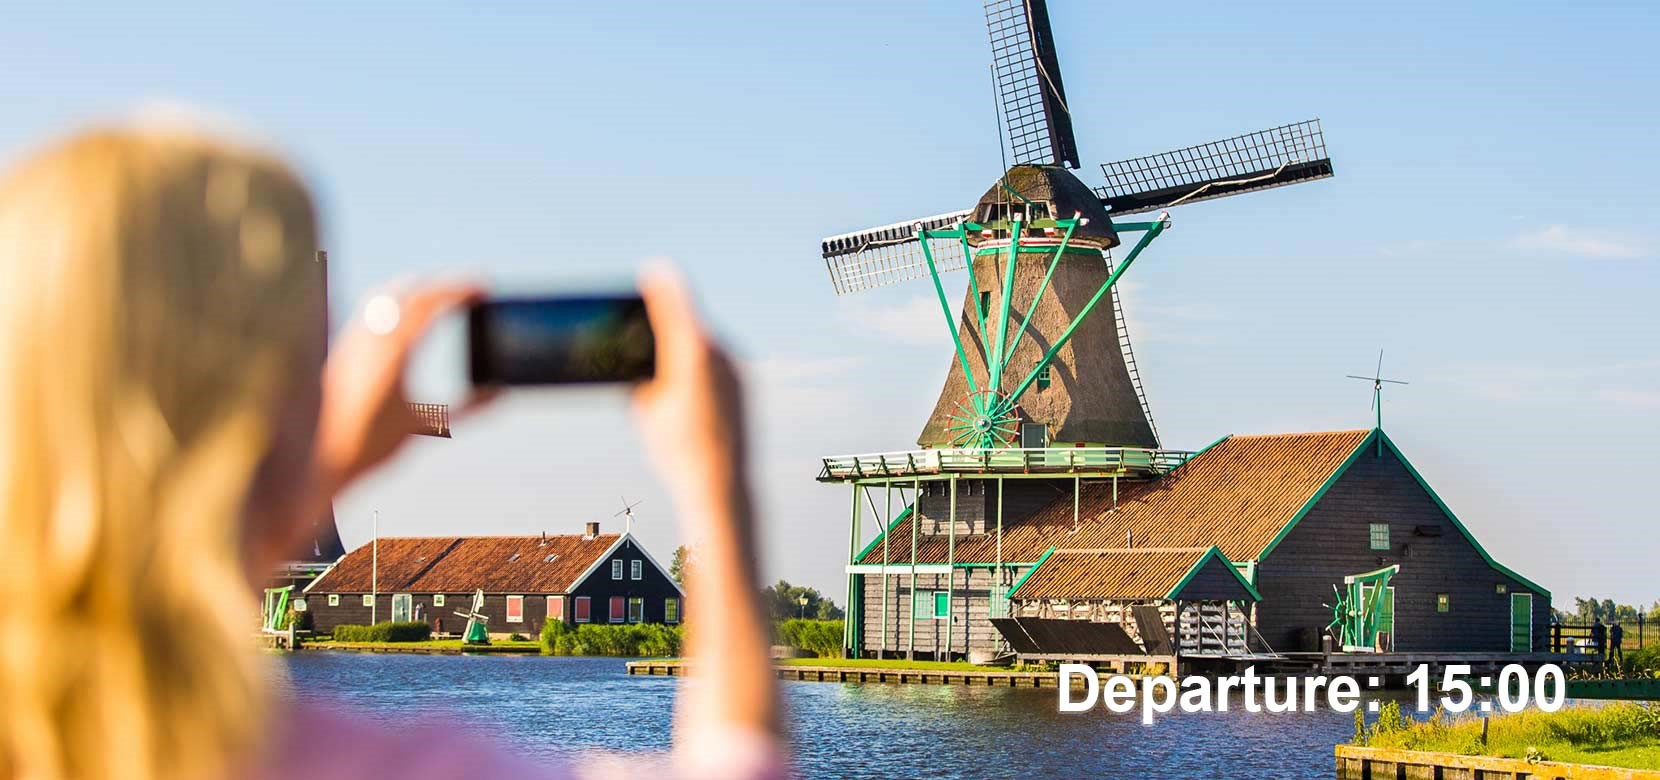 Countryside & Windmills Tour (dep. 15.00 h.) + Free Amsterdam Canal Cruise 1 h.